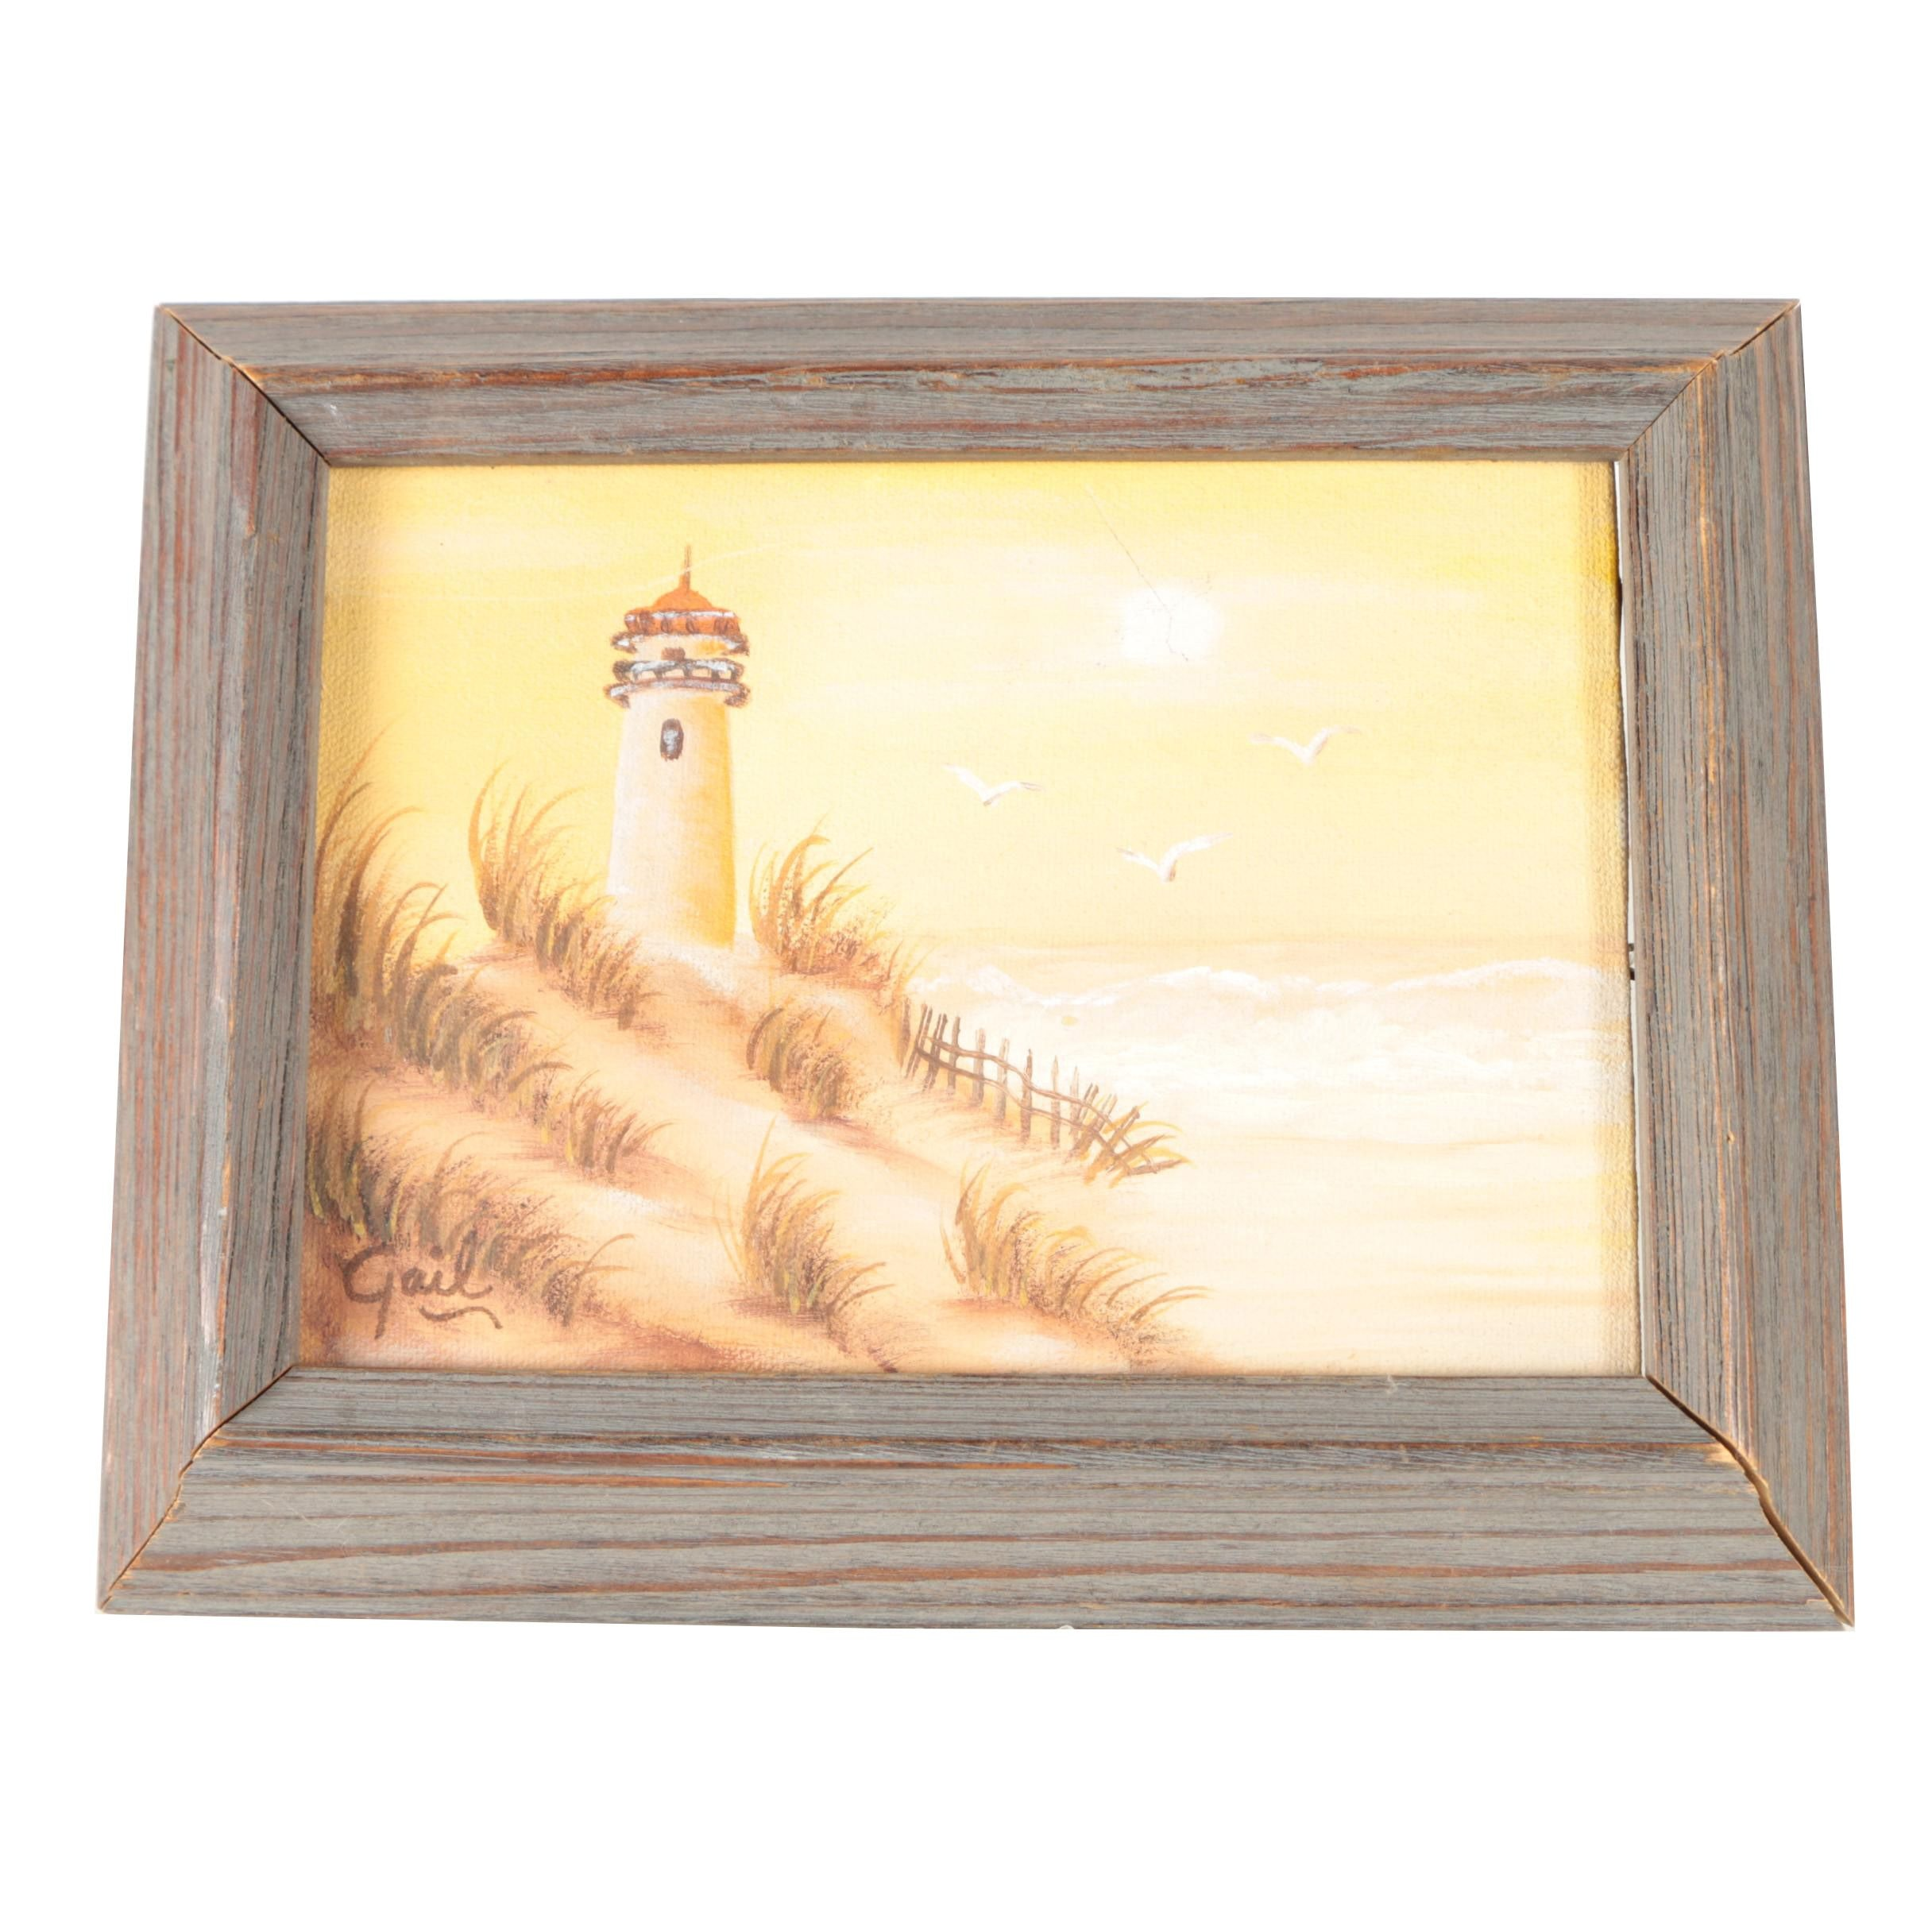 Gail Oil Painting on Canvas of a Lighthouse